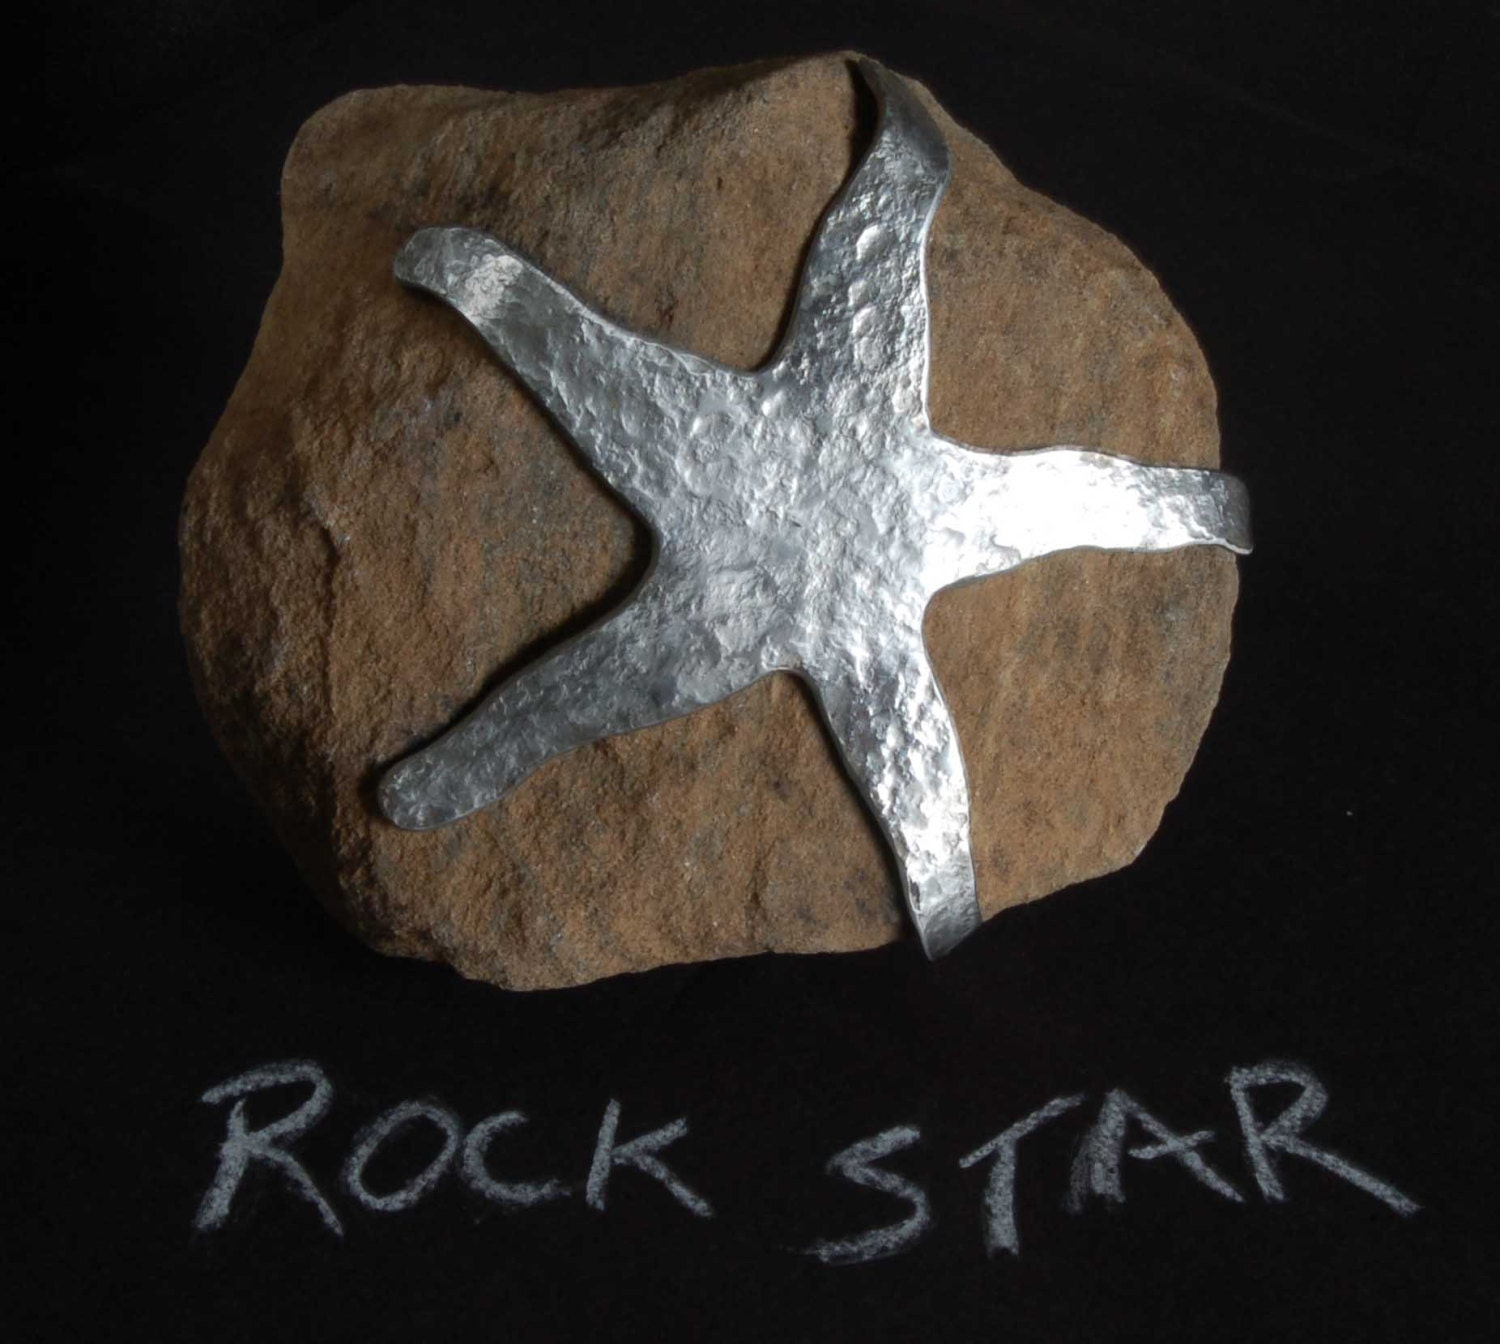 Canadian rock star garden decor rock hand forged stainless for Garden accessories canada